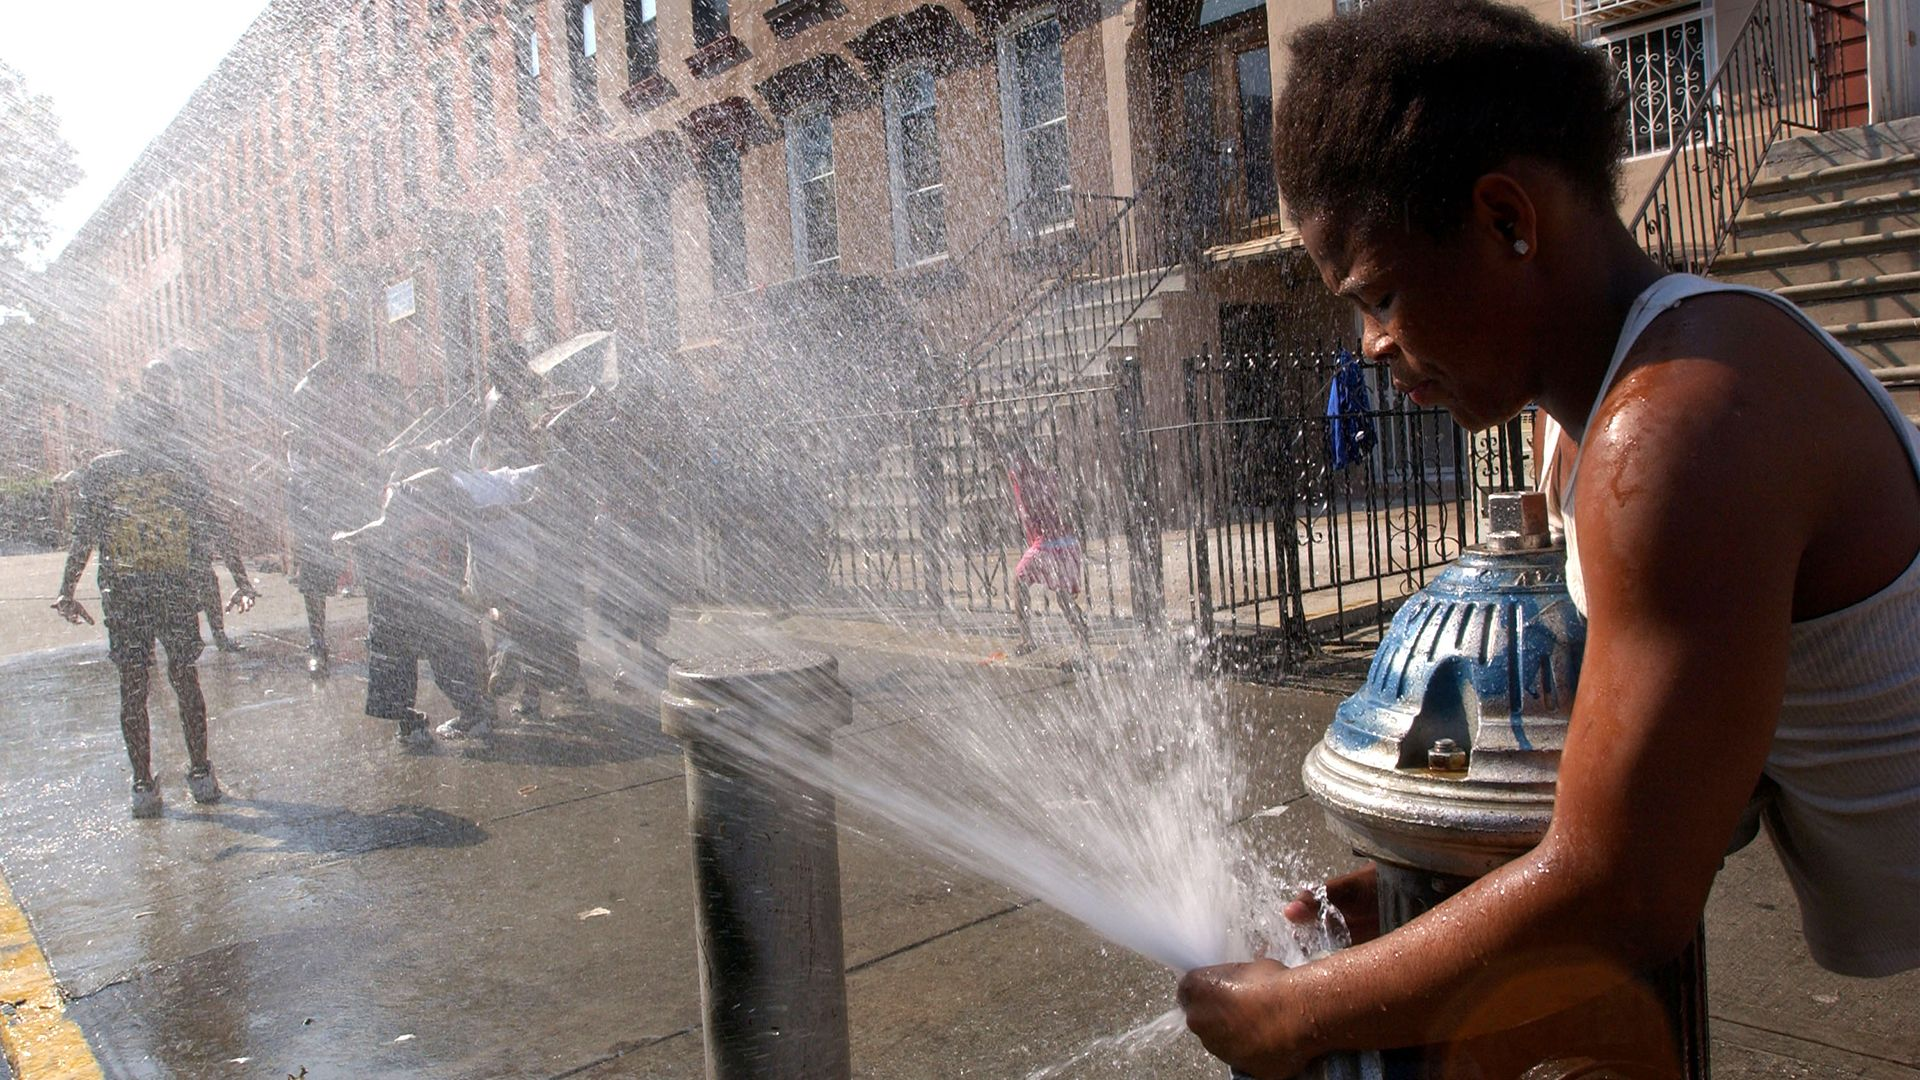 Staying cool during the hottest days of the year can be tough, but there are some tips that are proven by science that can help (Credit: Getty Images)